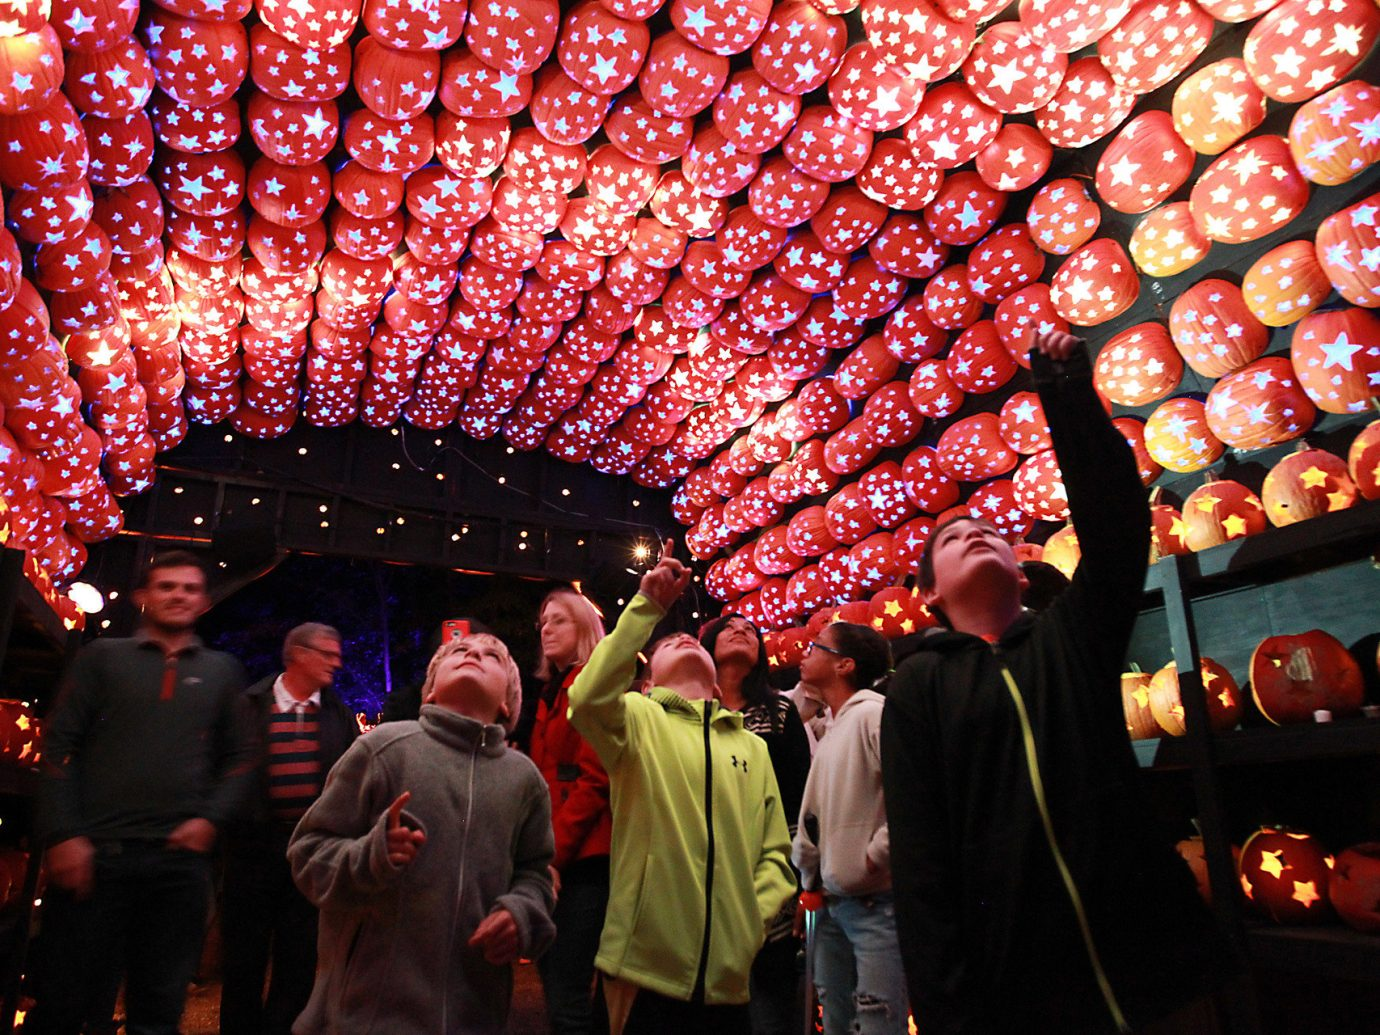 activities art Arts + Culture festive halloween lights night people pumpkins Trip Ideas person color crowd red stage nightclub chinese new year festival